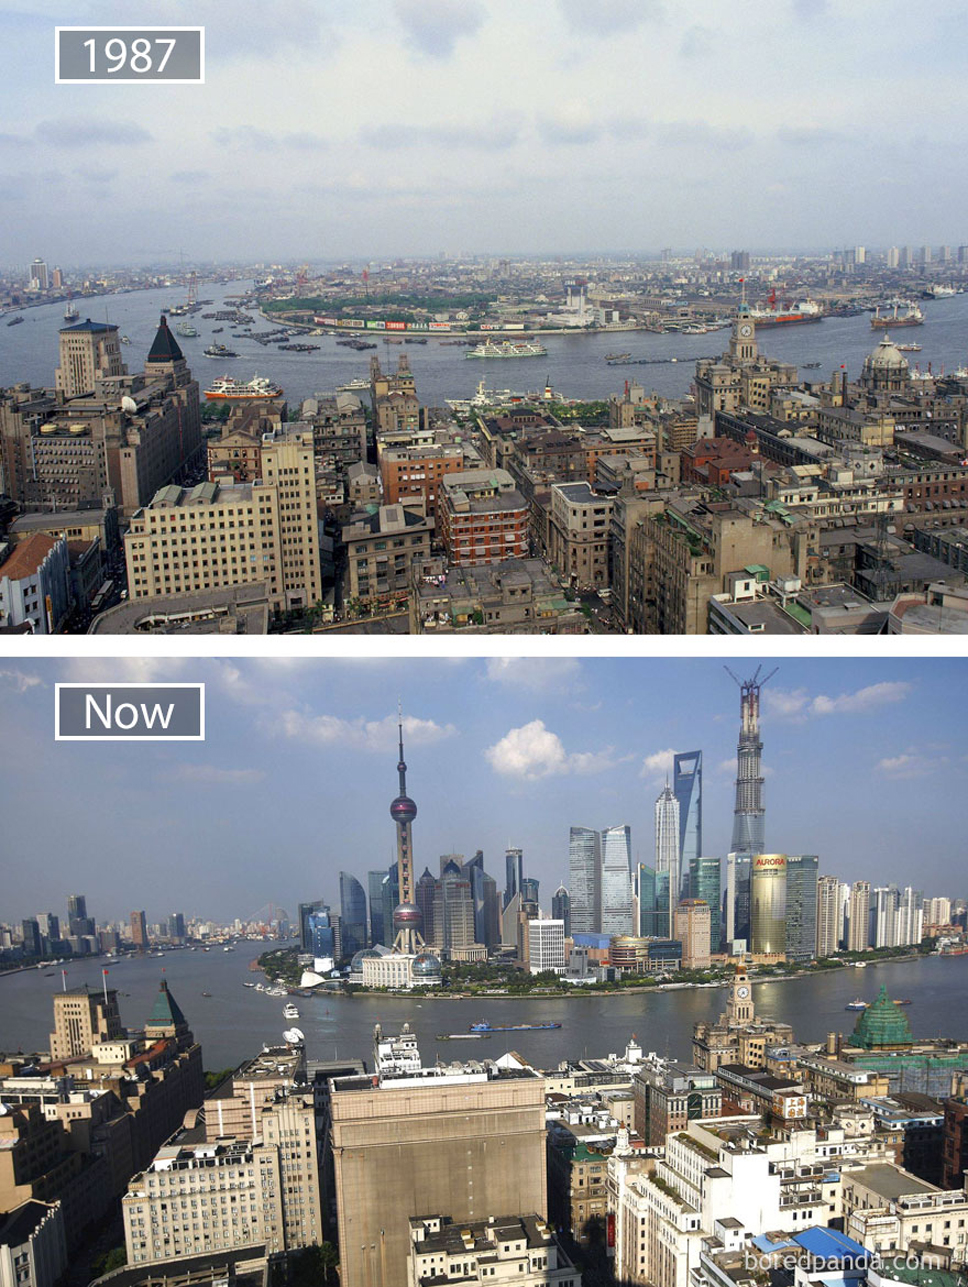 how-famous-city-changed-timelapse-evolution-before-after-15-577a072656fa5__880